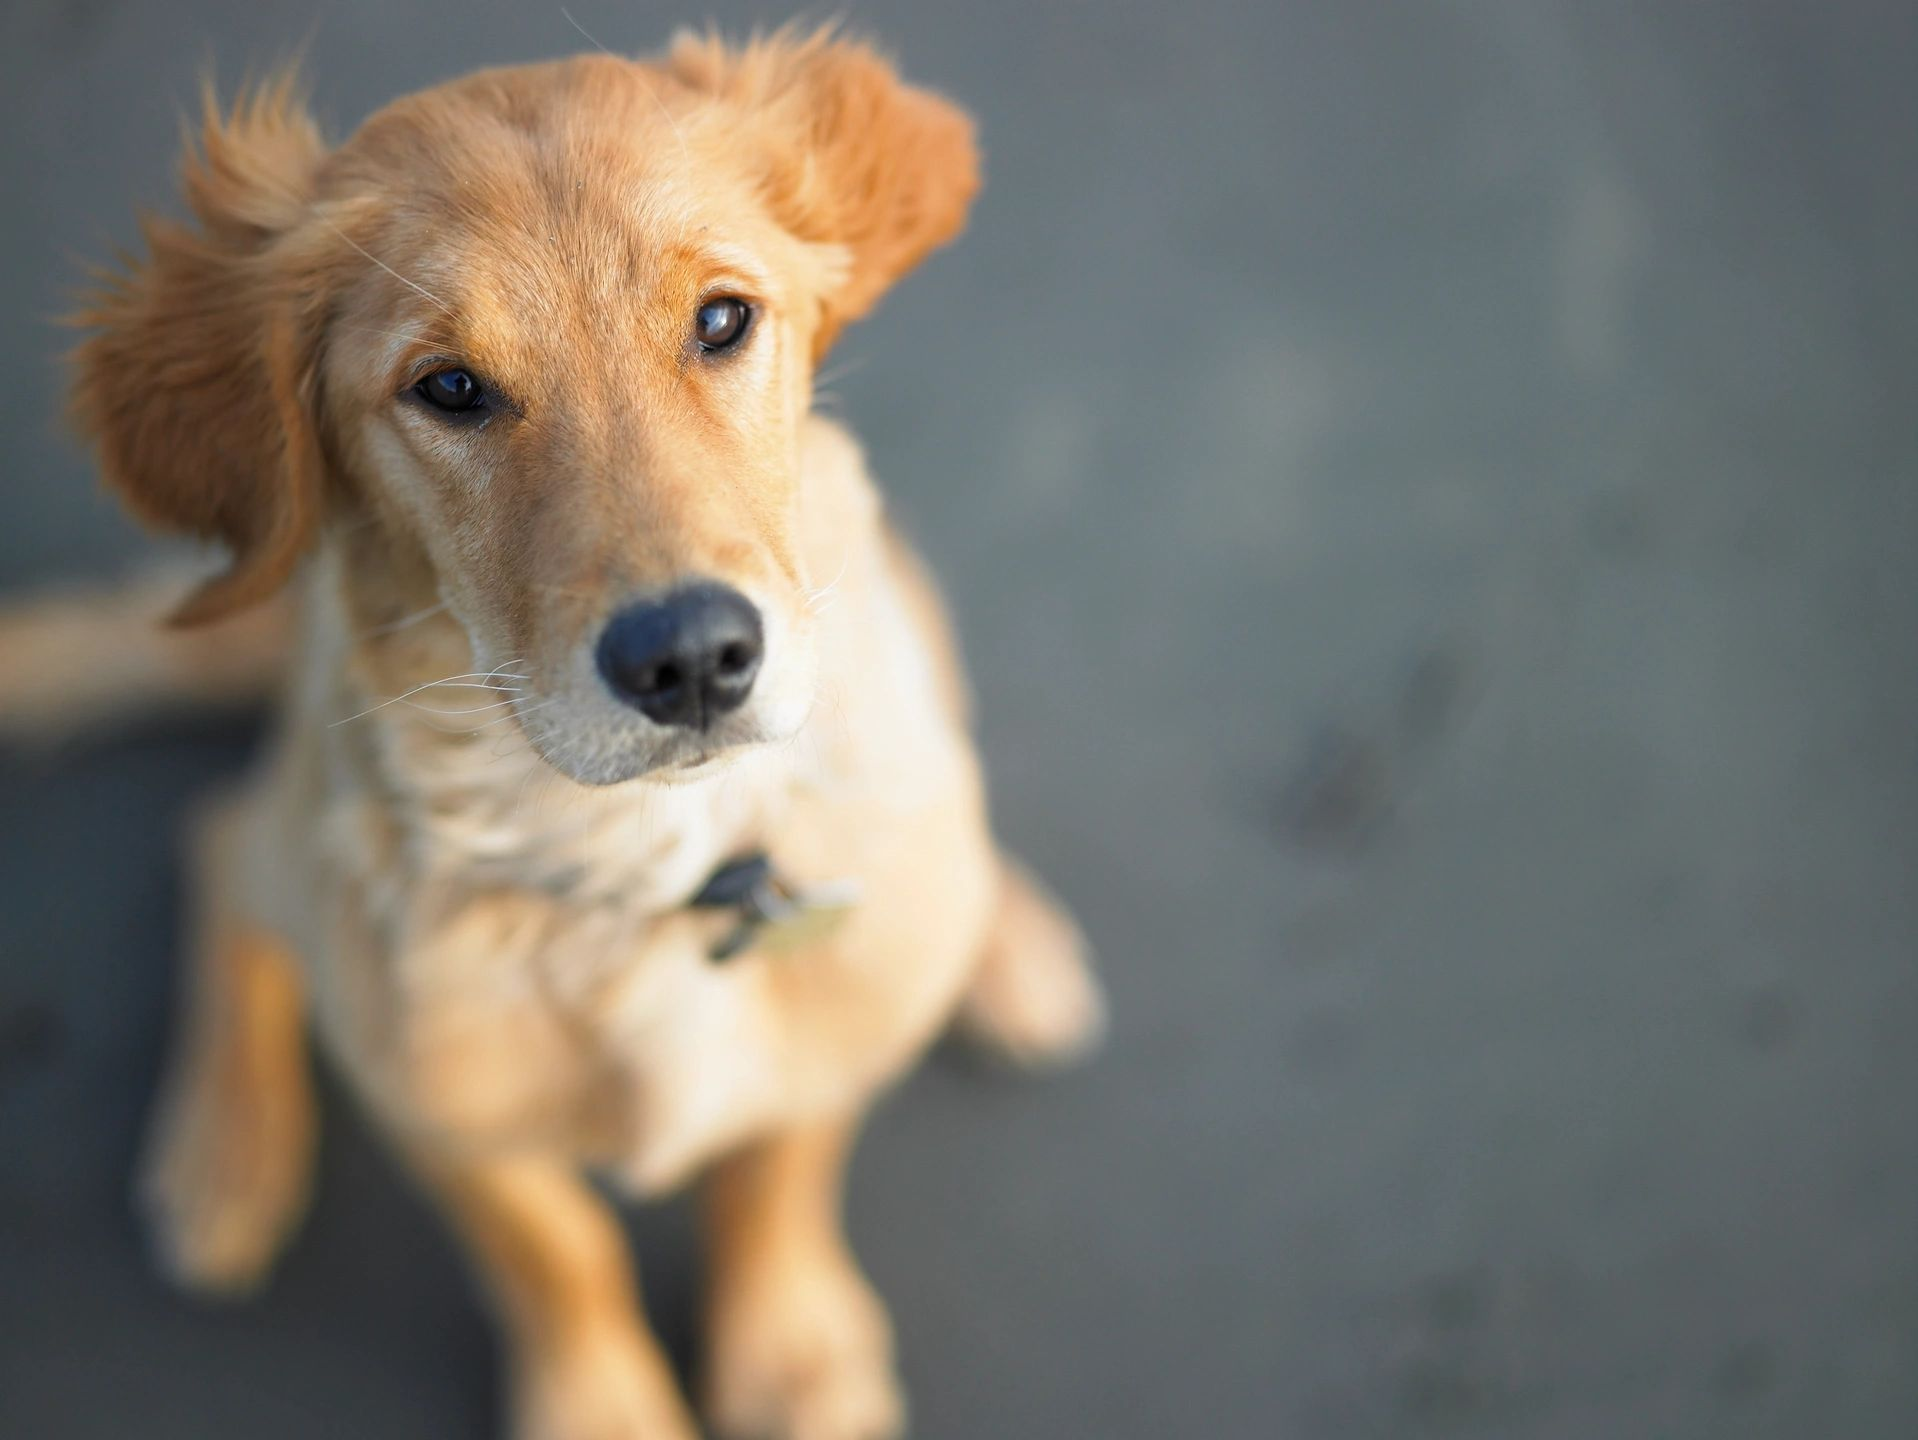 Why Do I Need a Professional Dog Trainer Designation to Train Dogs?